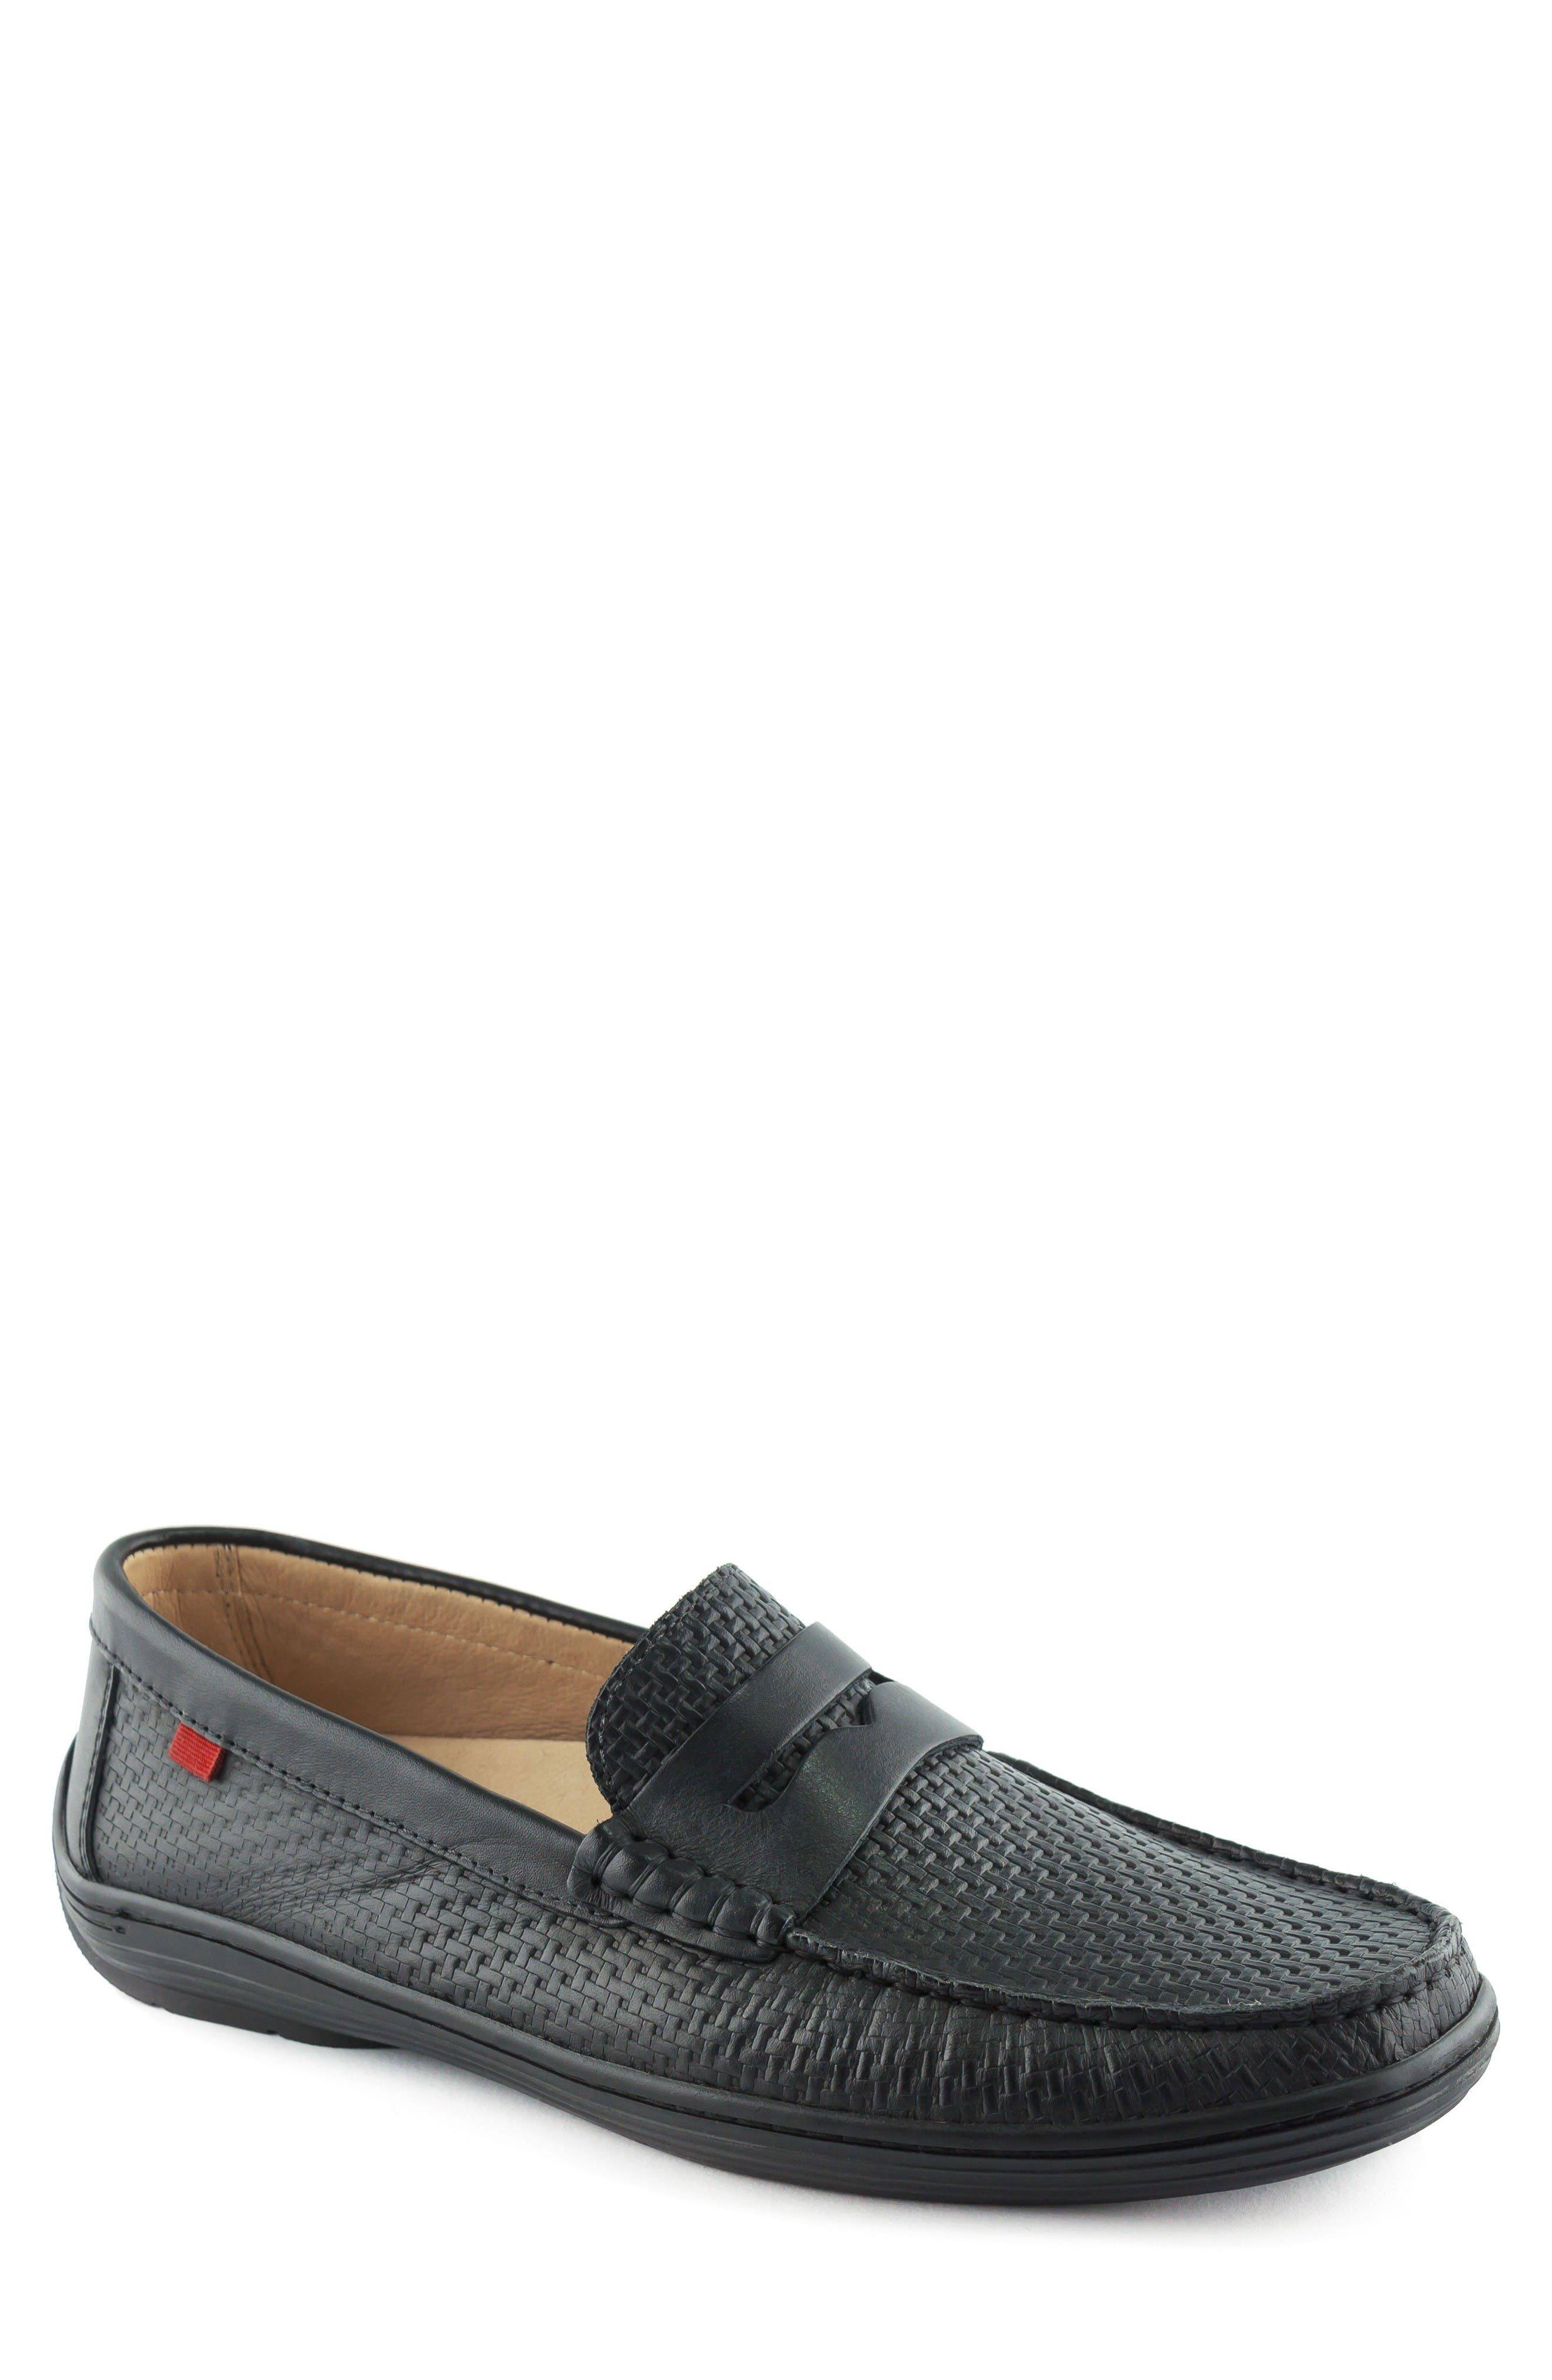 MARC JOSEPH NEW YORK Atlantic Penny Loafer